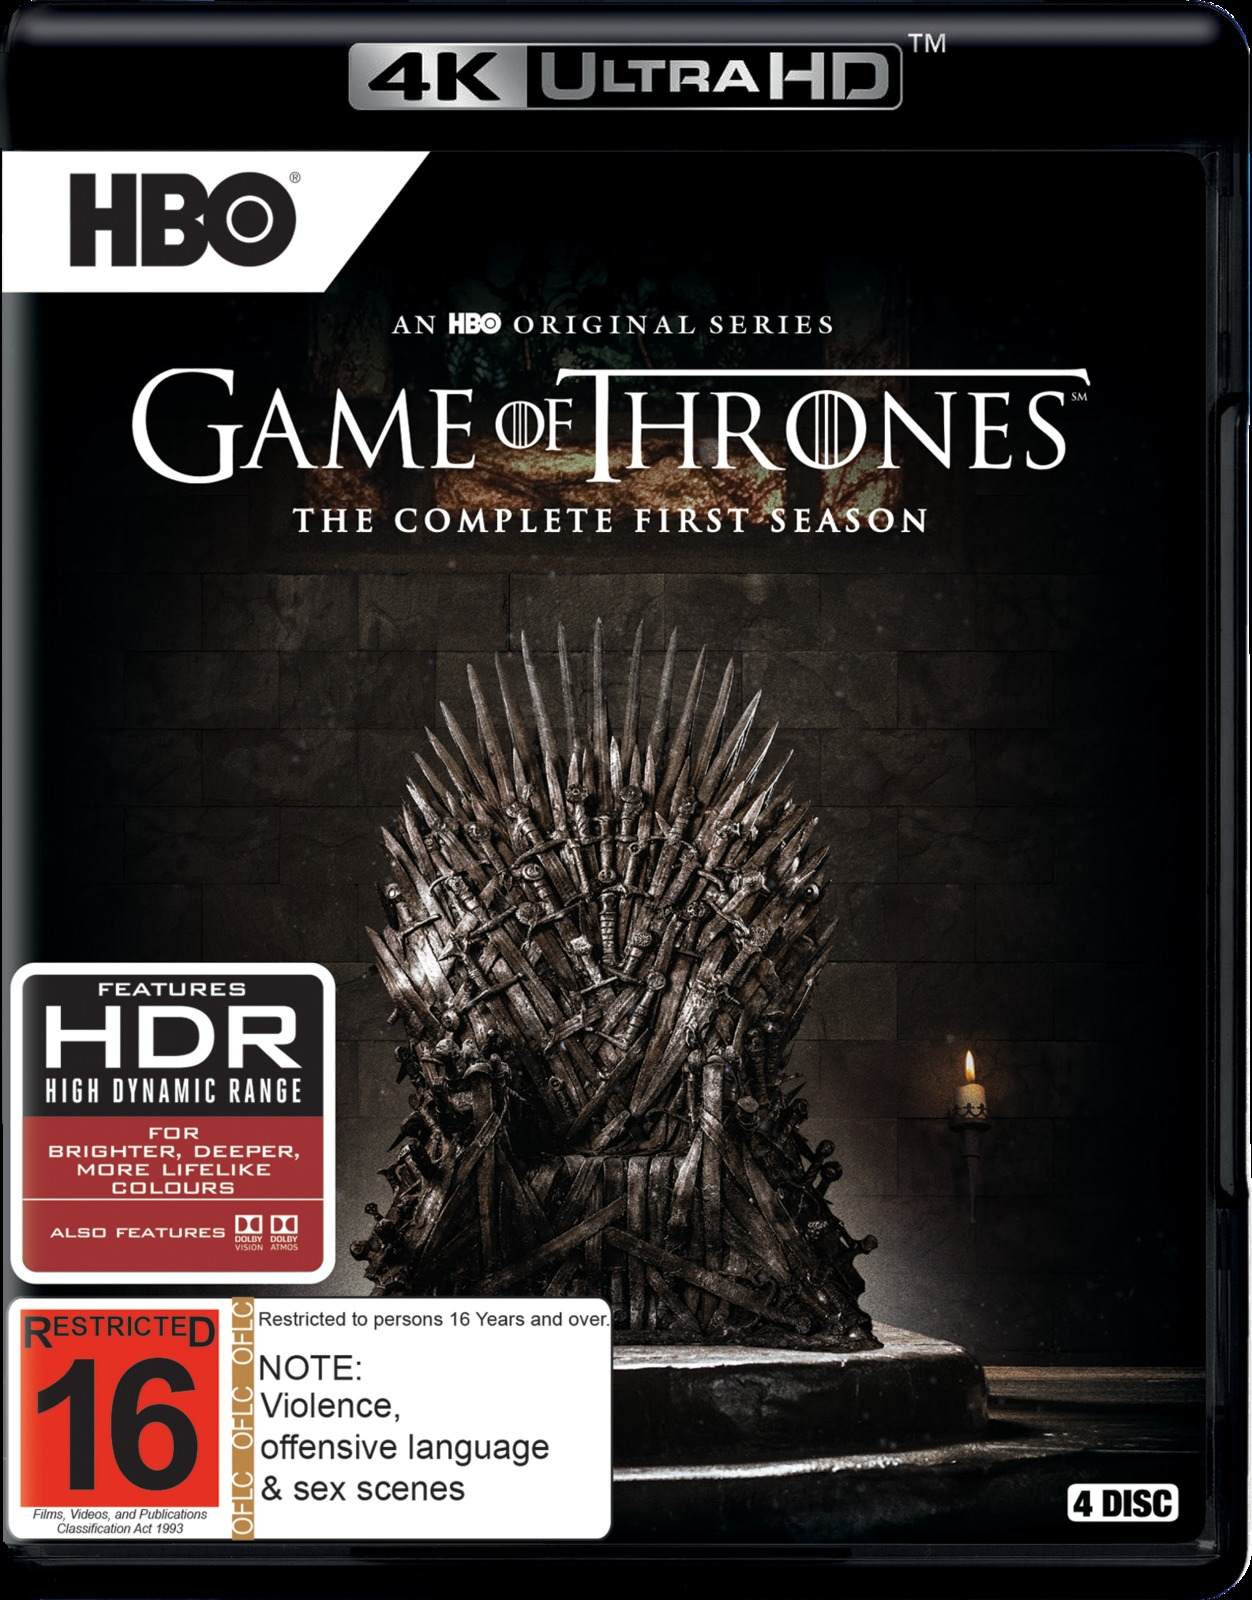 Game of Thrones - The Complete First Season on UHD Blu-ray image